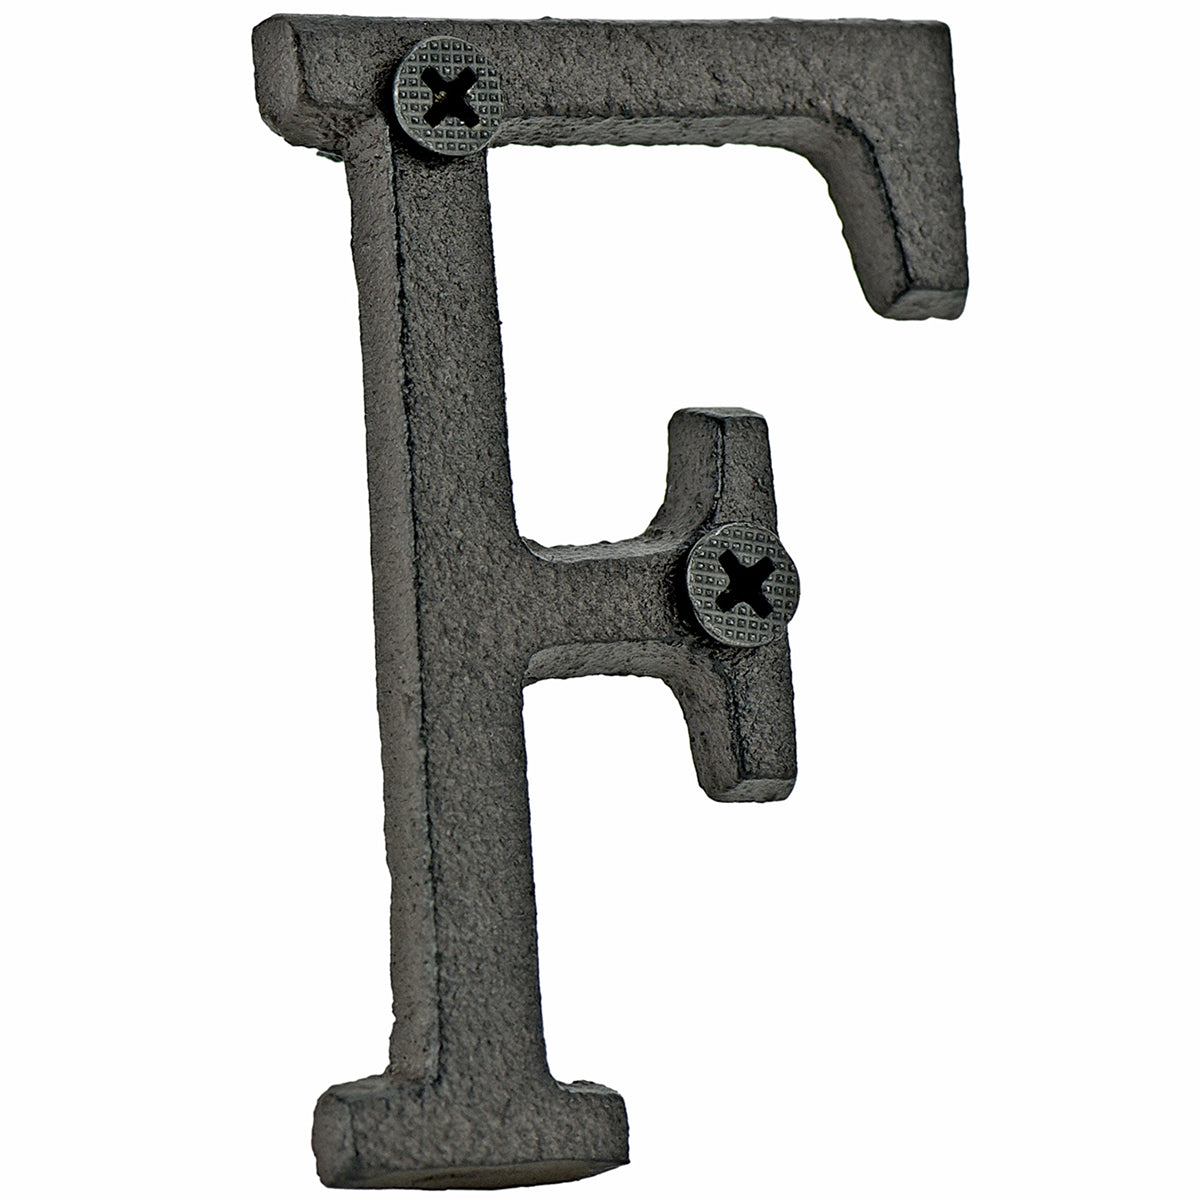 A cast iron house letter sign 'F' with white background